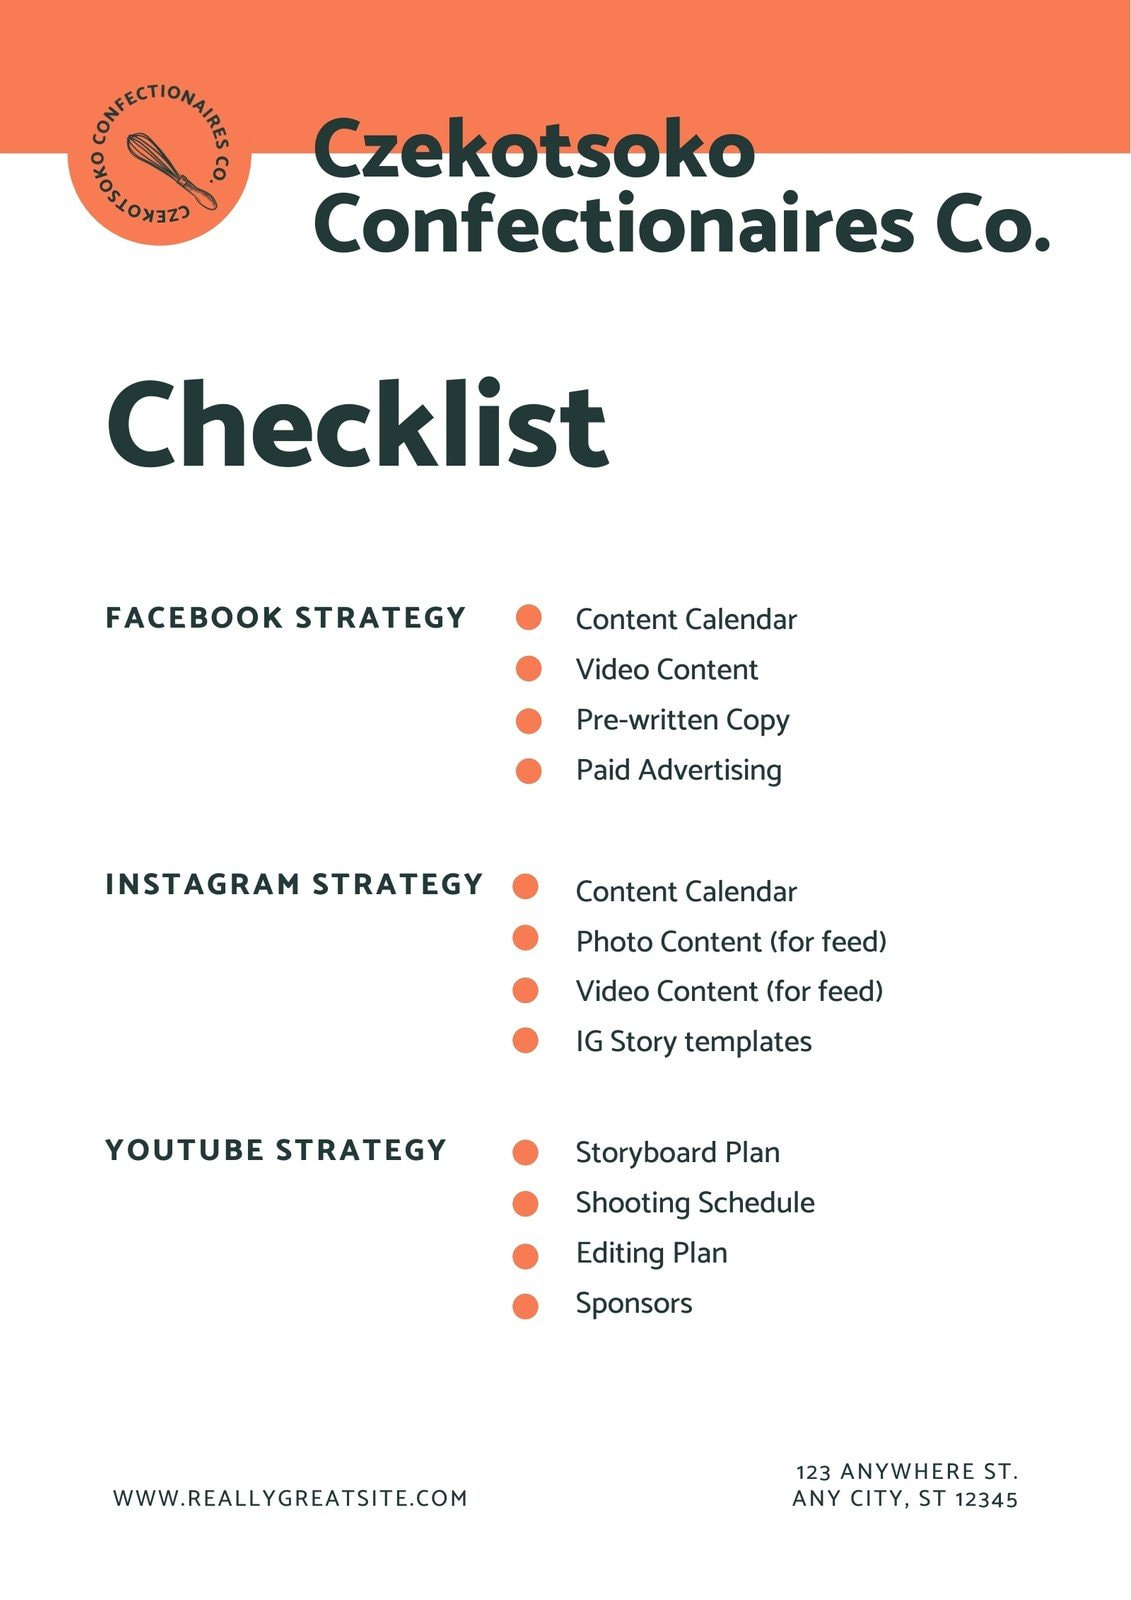 Orange and White Bold & Bright Home-based Food Business Checklist